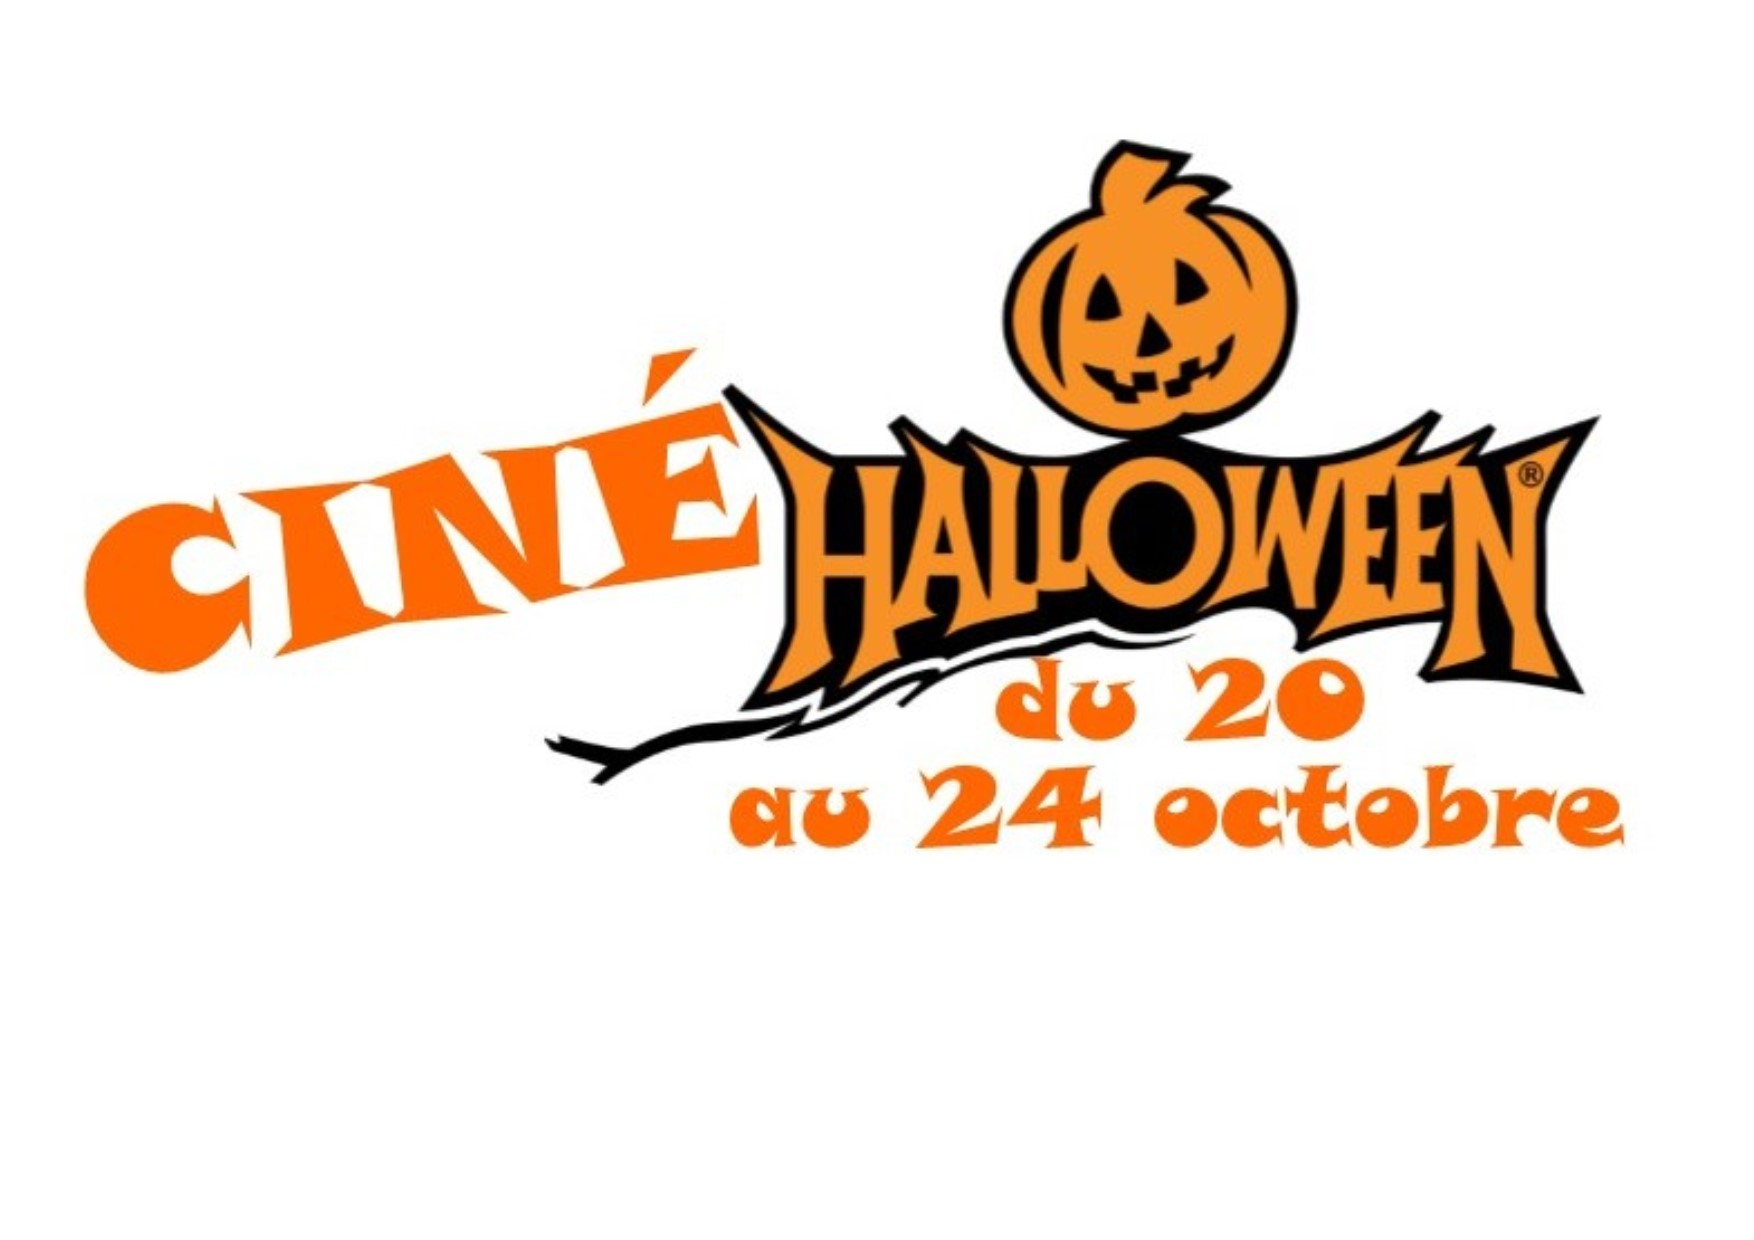 SEMAINE HALLOWEEN AU CINEMA